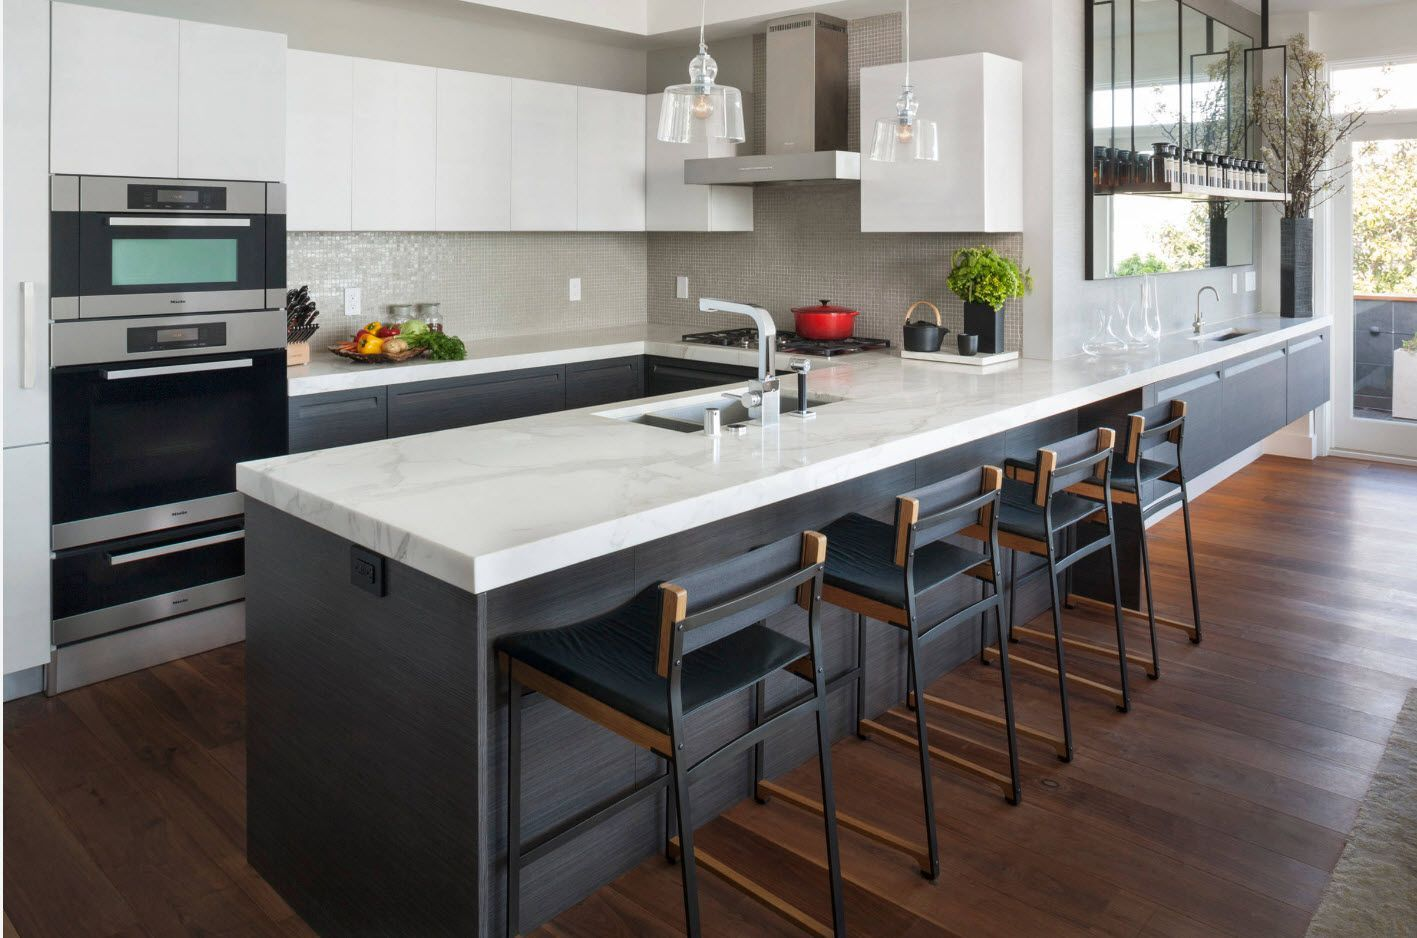 Plane surfaces and strict lines in the absolutely modern hi-tech design of the kitchen